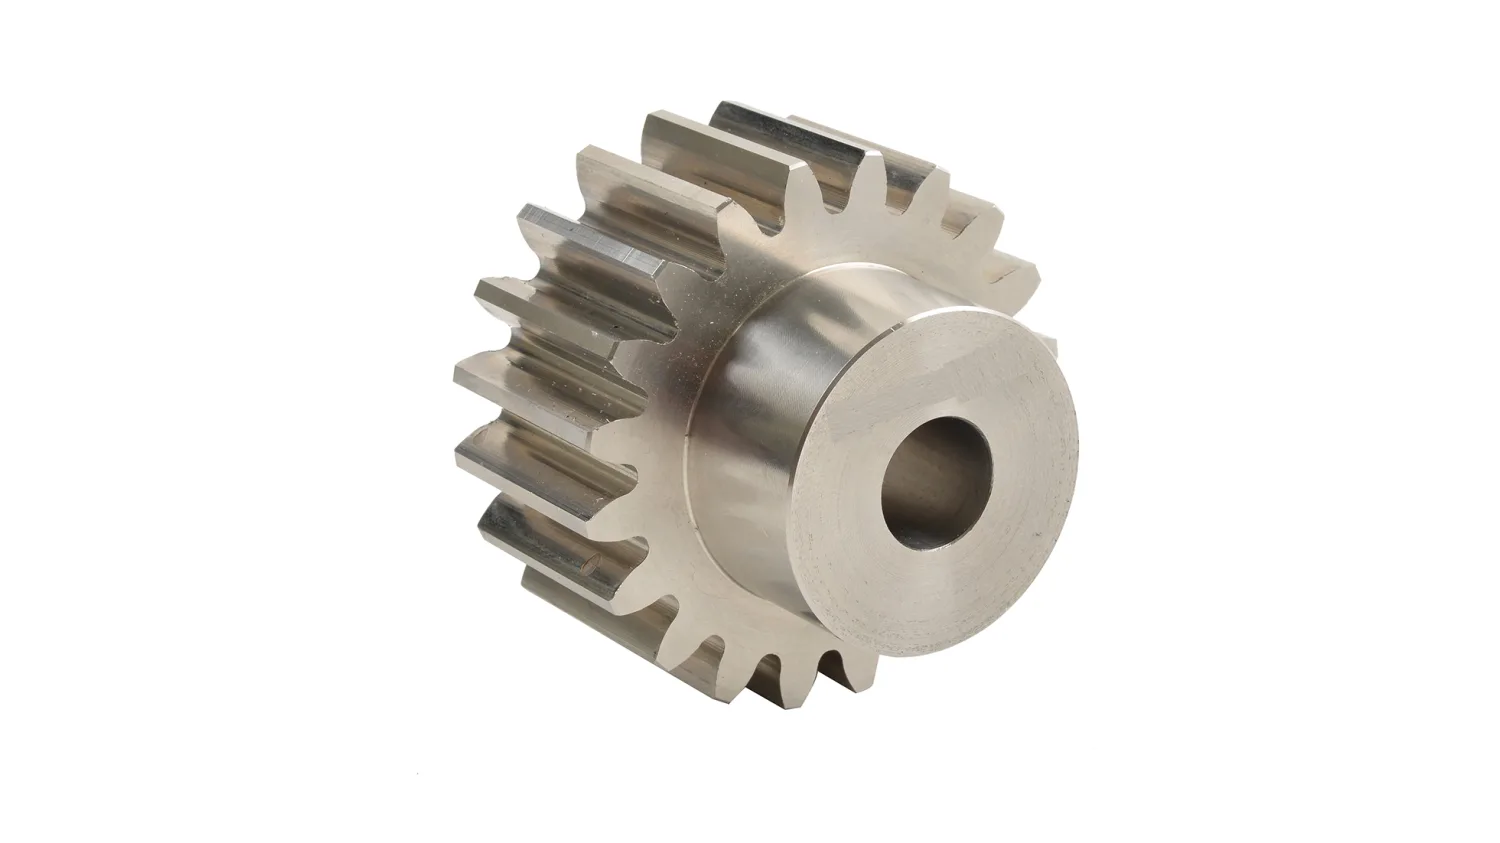 2-Mod-x-43-Tooth-Metric-Spur-Gear-in-Steel